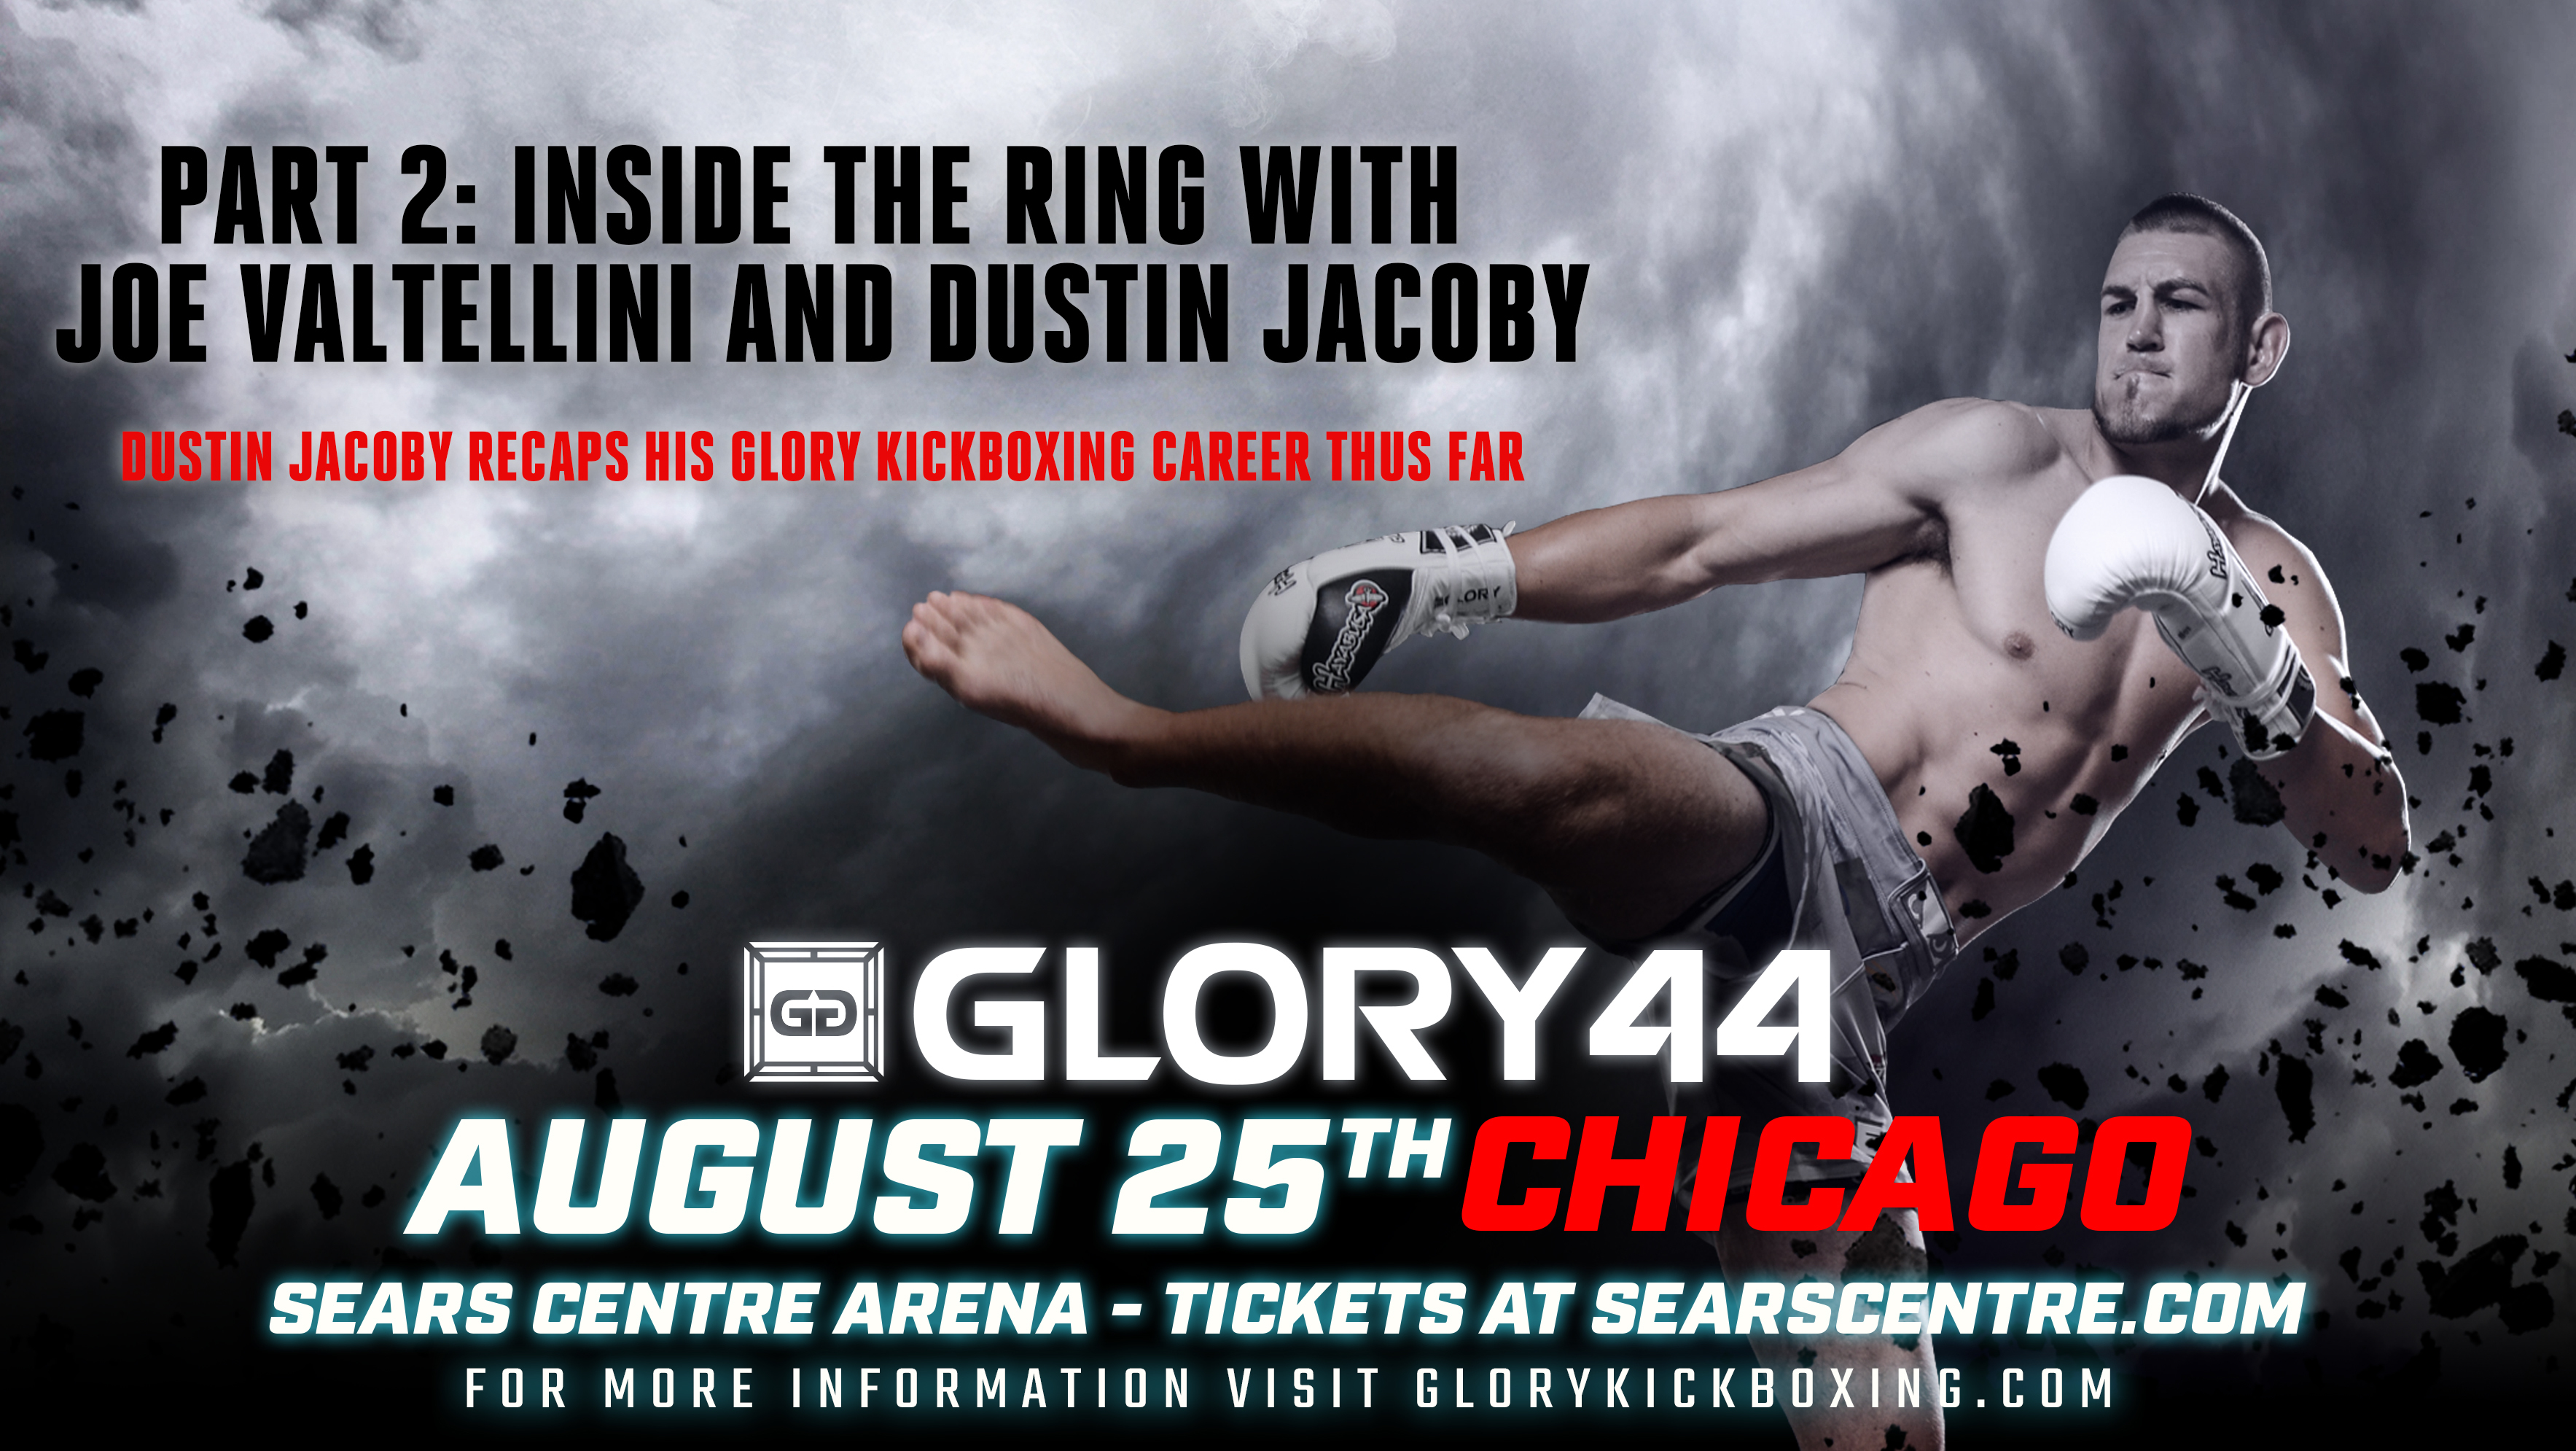 Part 2 - Dustin Jacoby recaps his GLORY Kickboxing career thus far: GLORY 44 Chicago